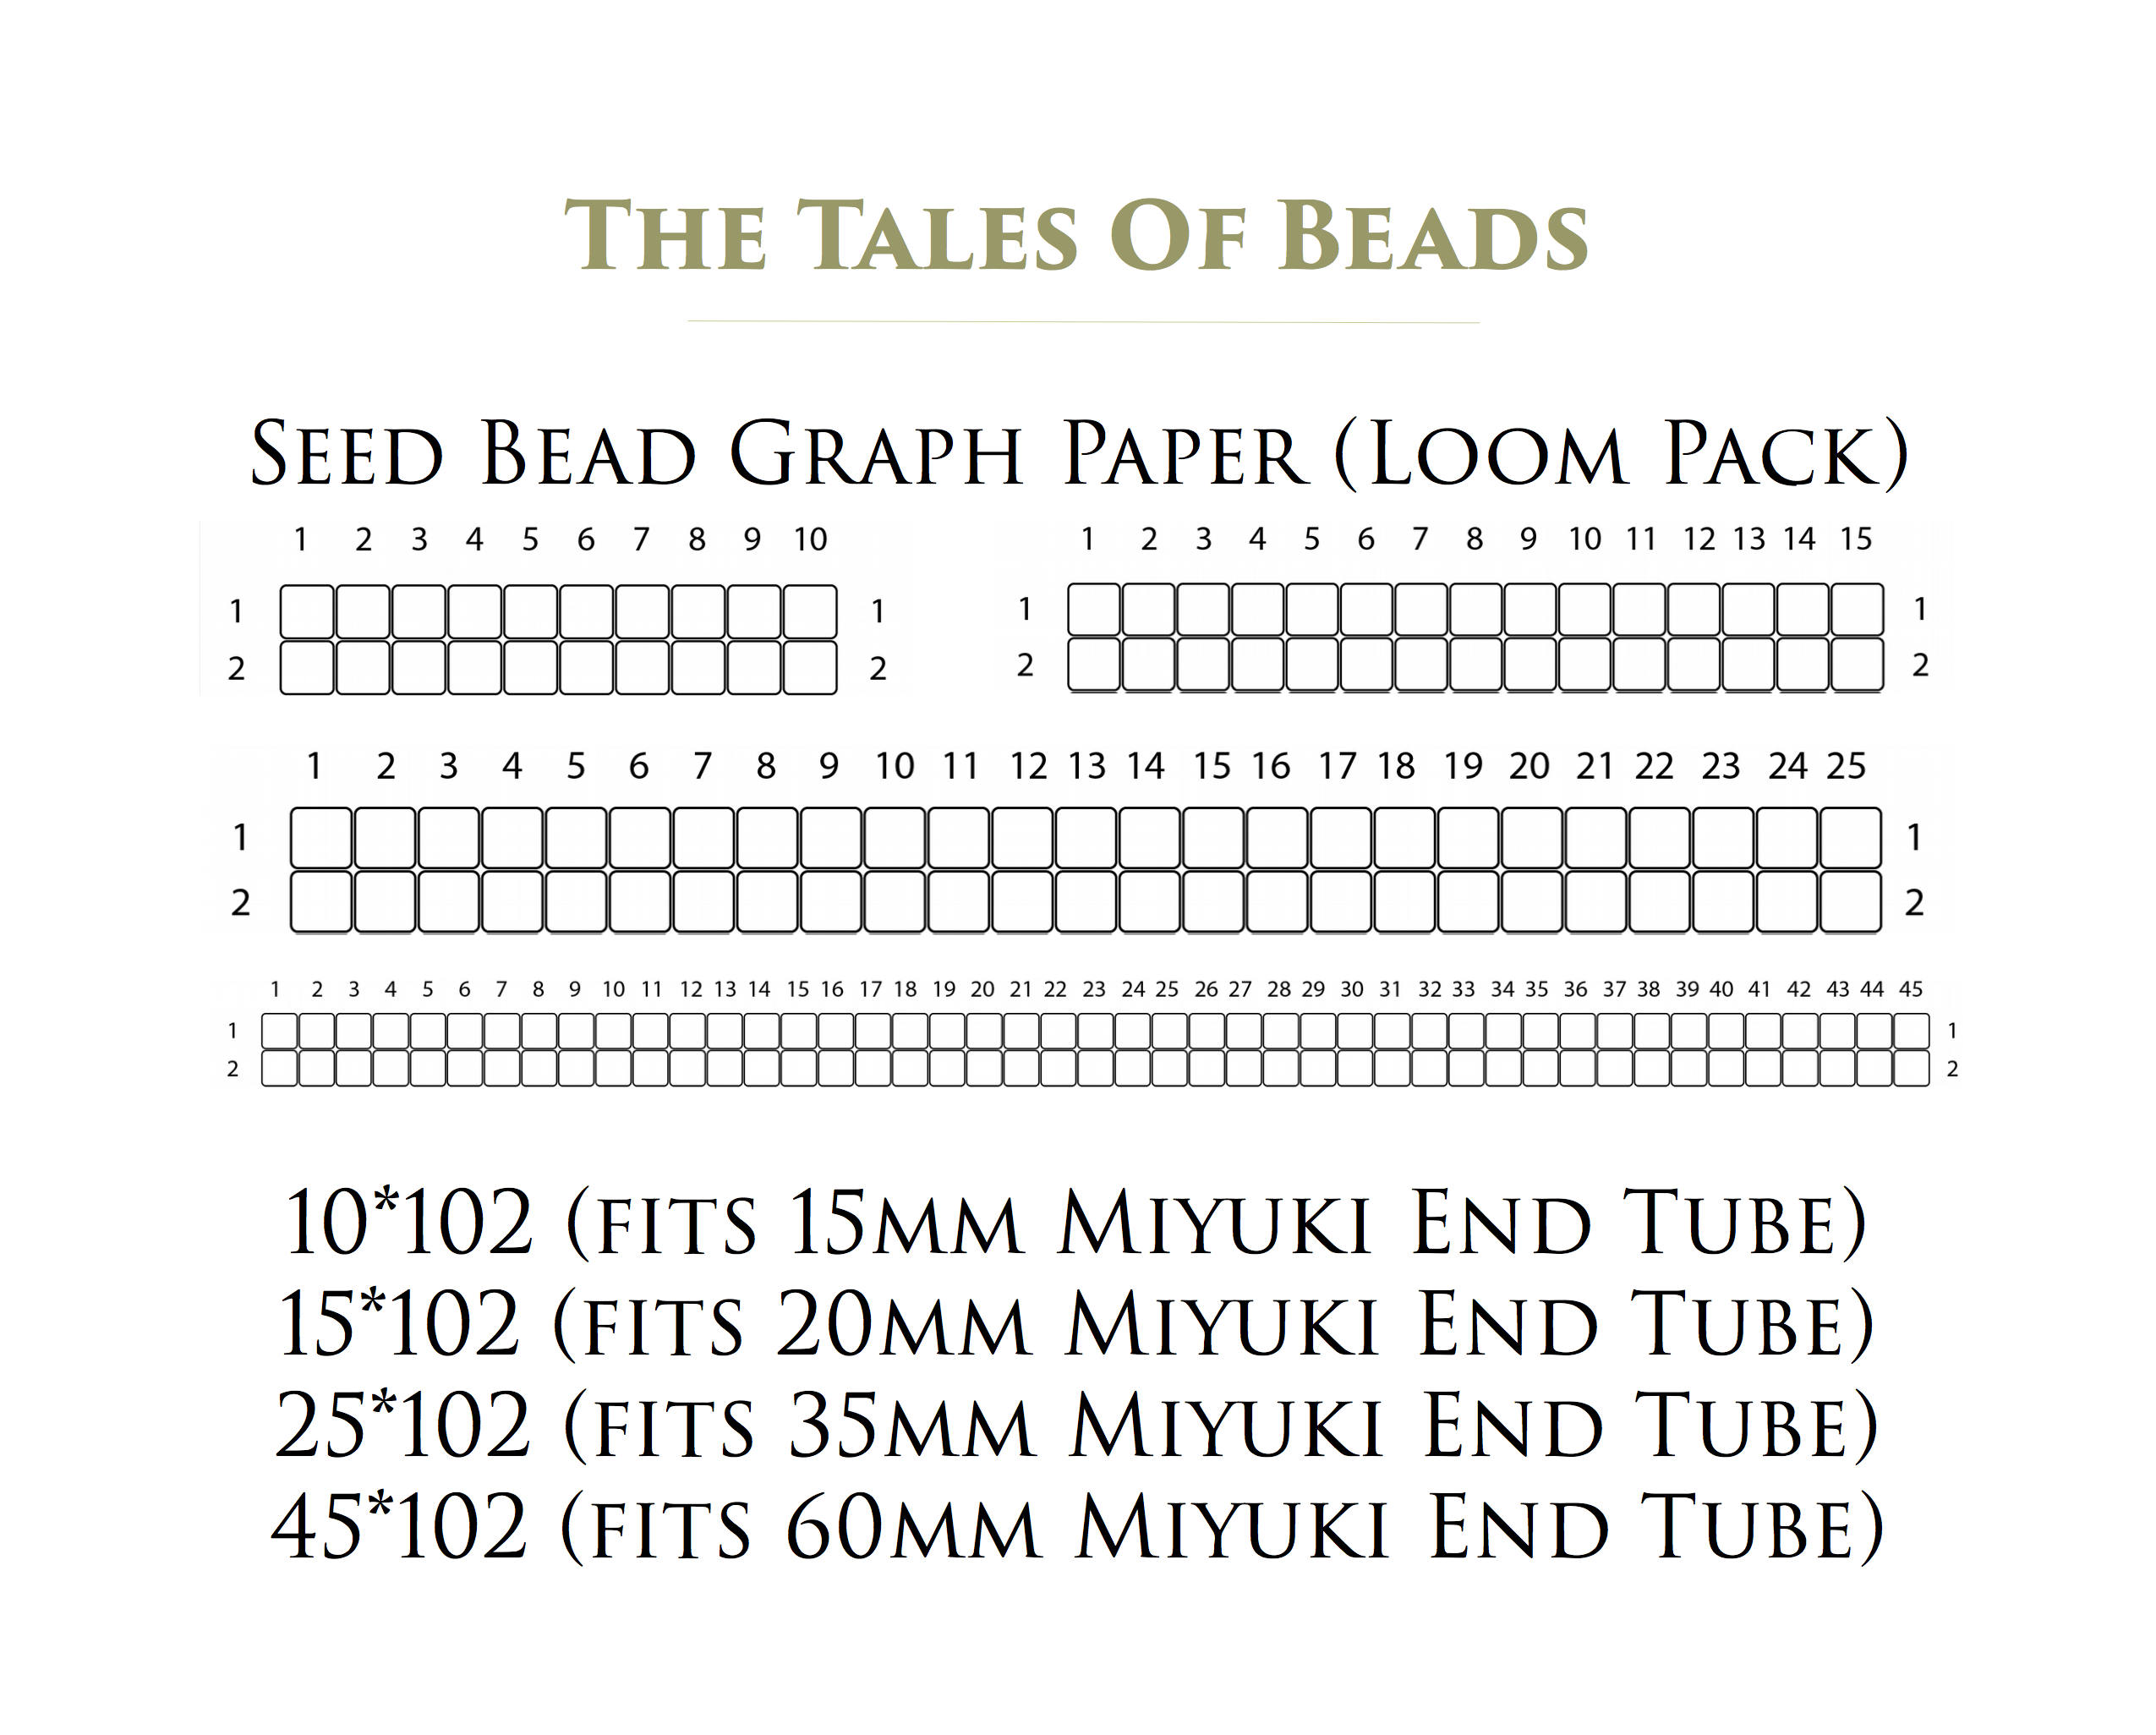 seed bead graph paper - Ecza.solinf.co